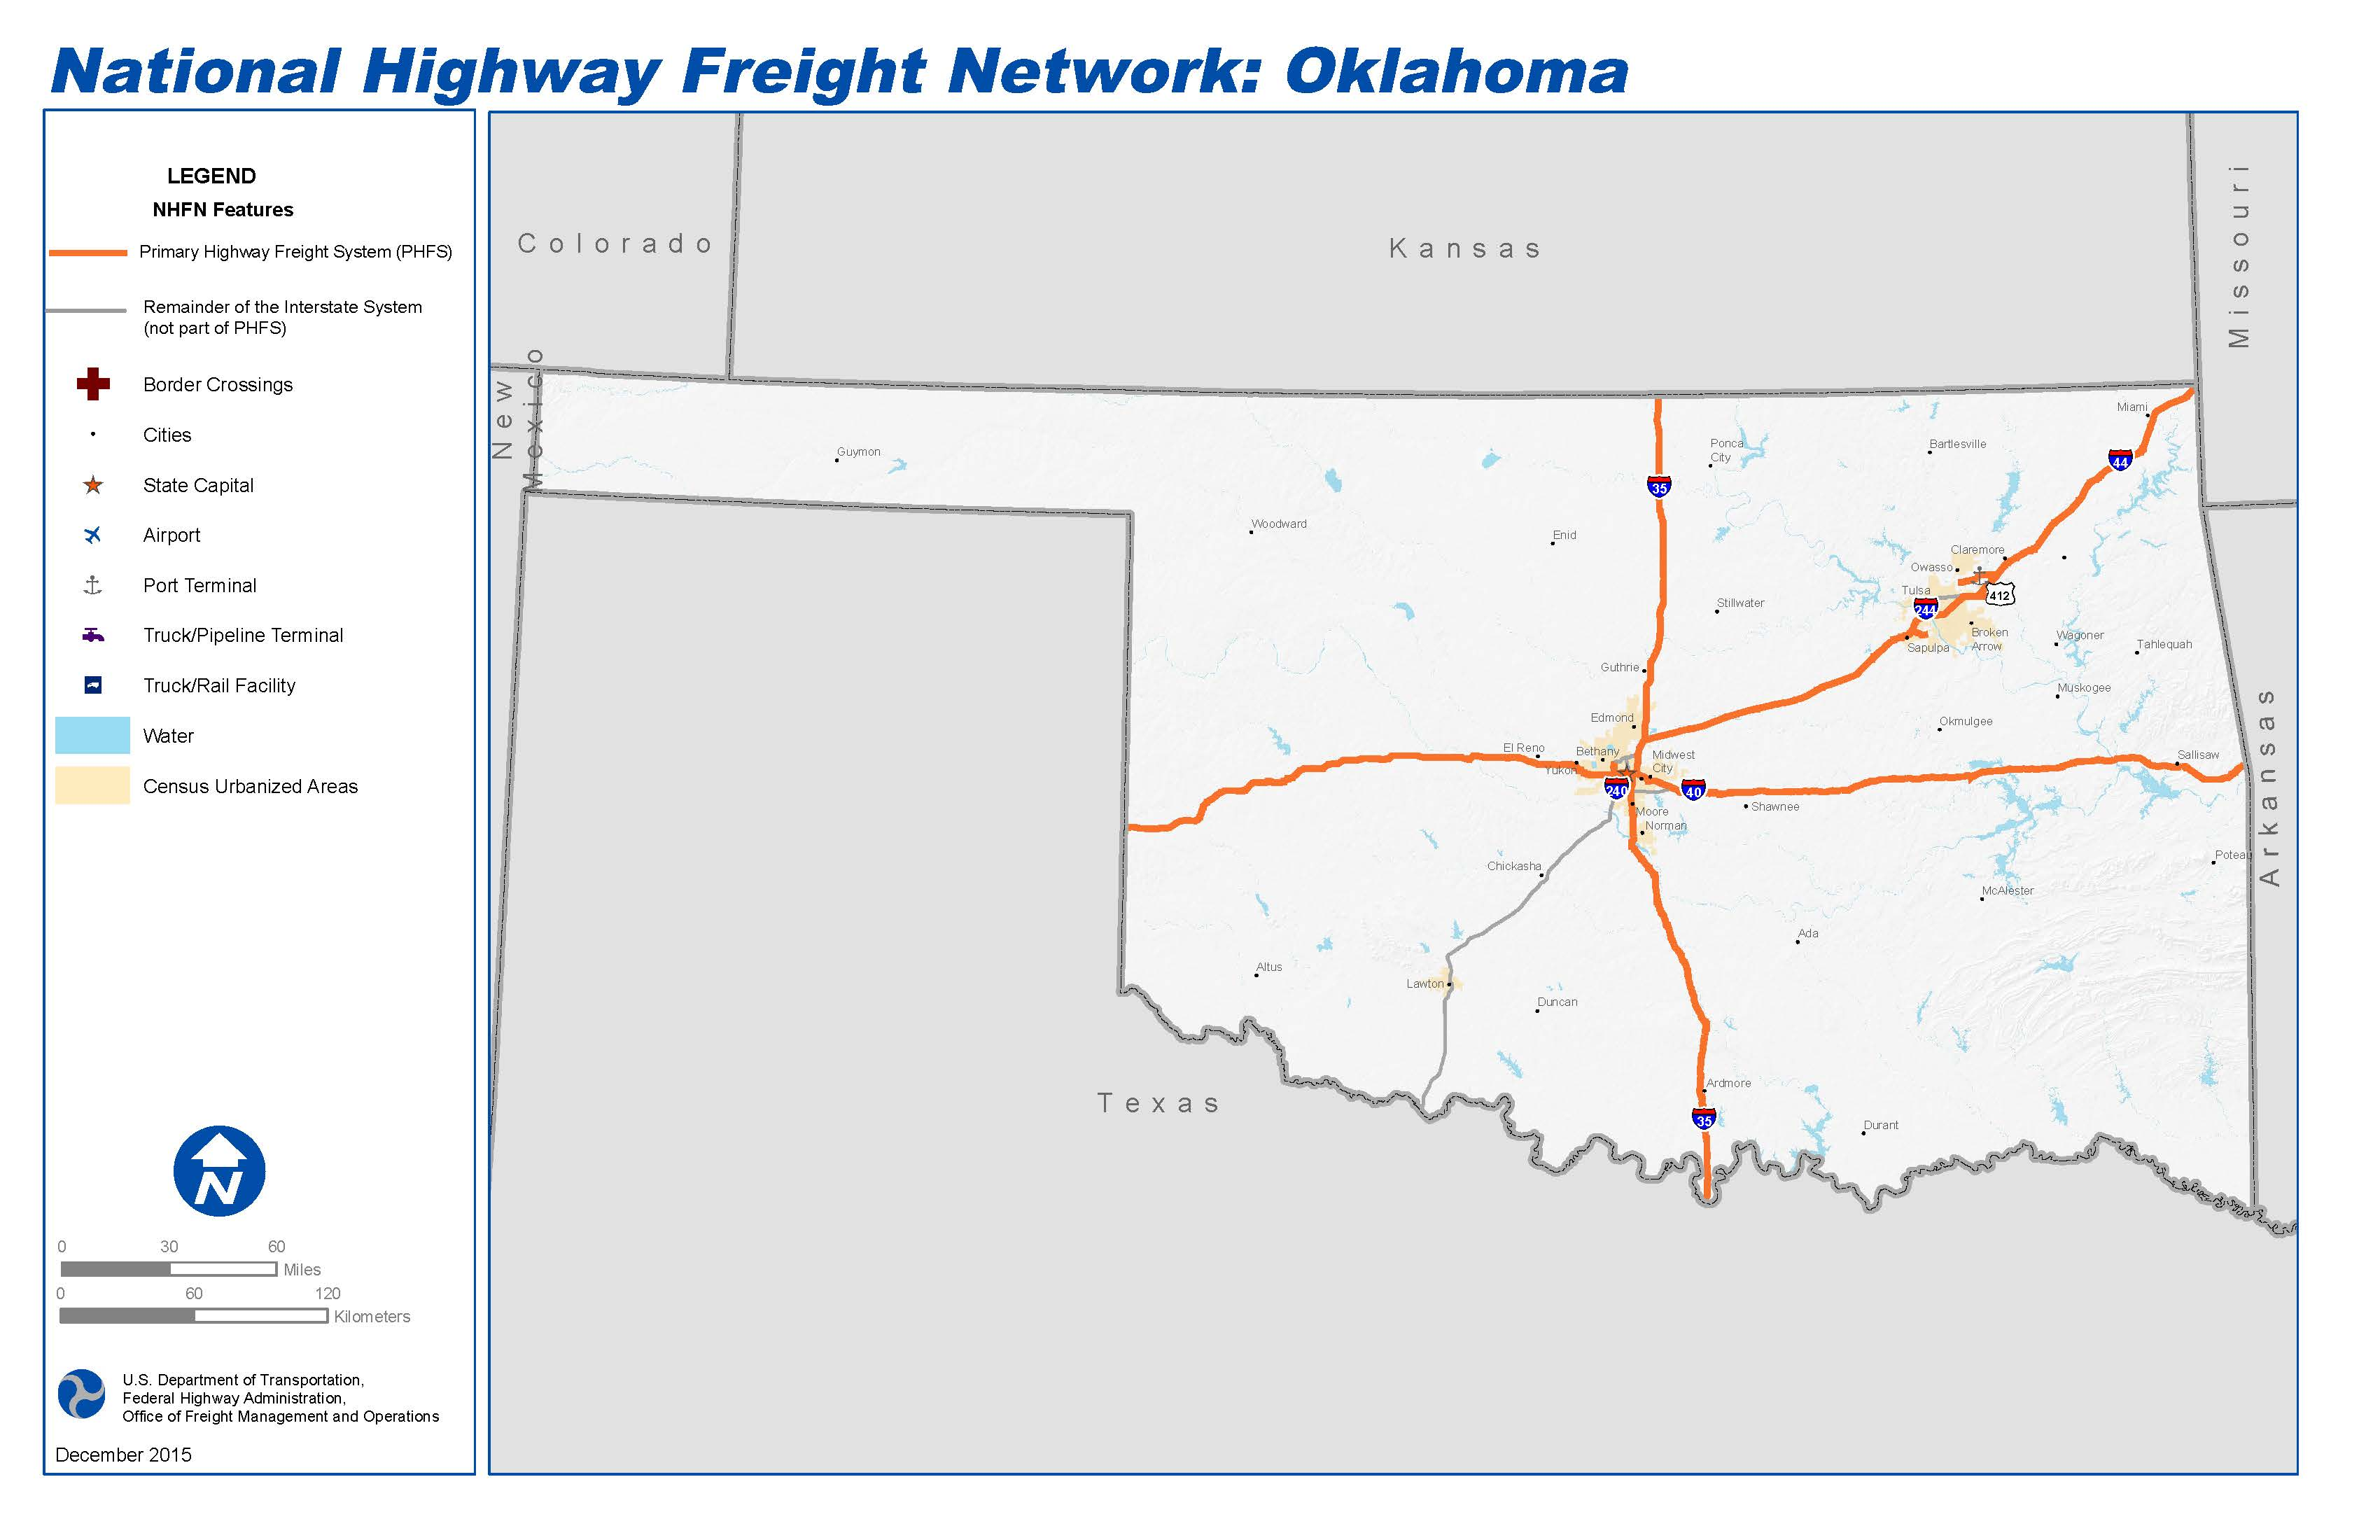 National Highway Freight Network Map And Tables For Oklahoma - Oklahoma highways map